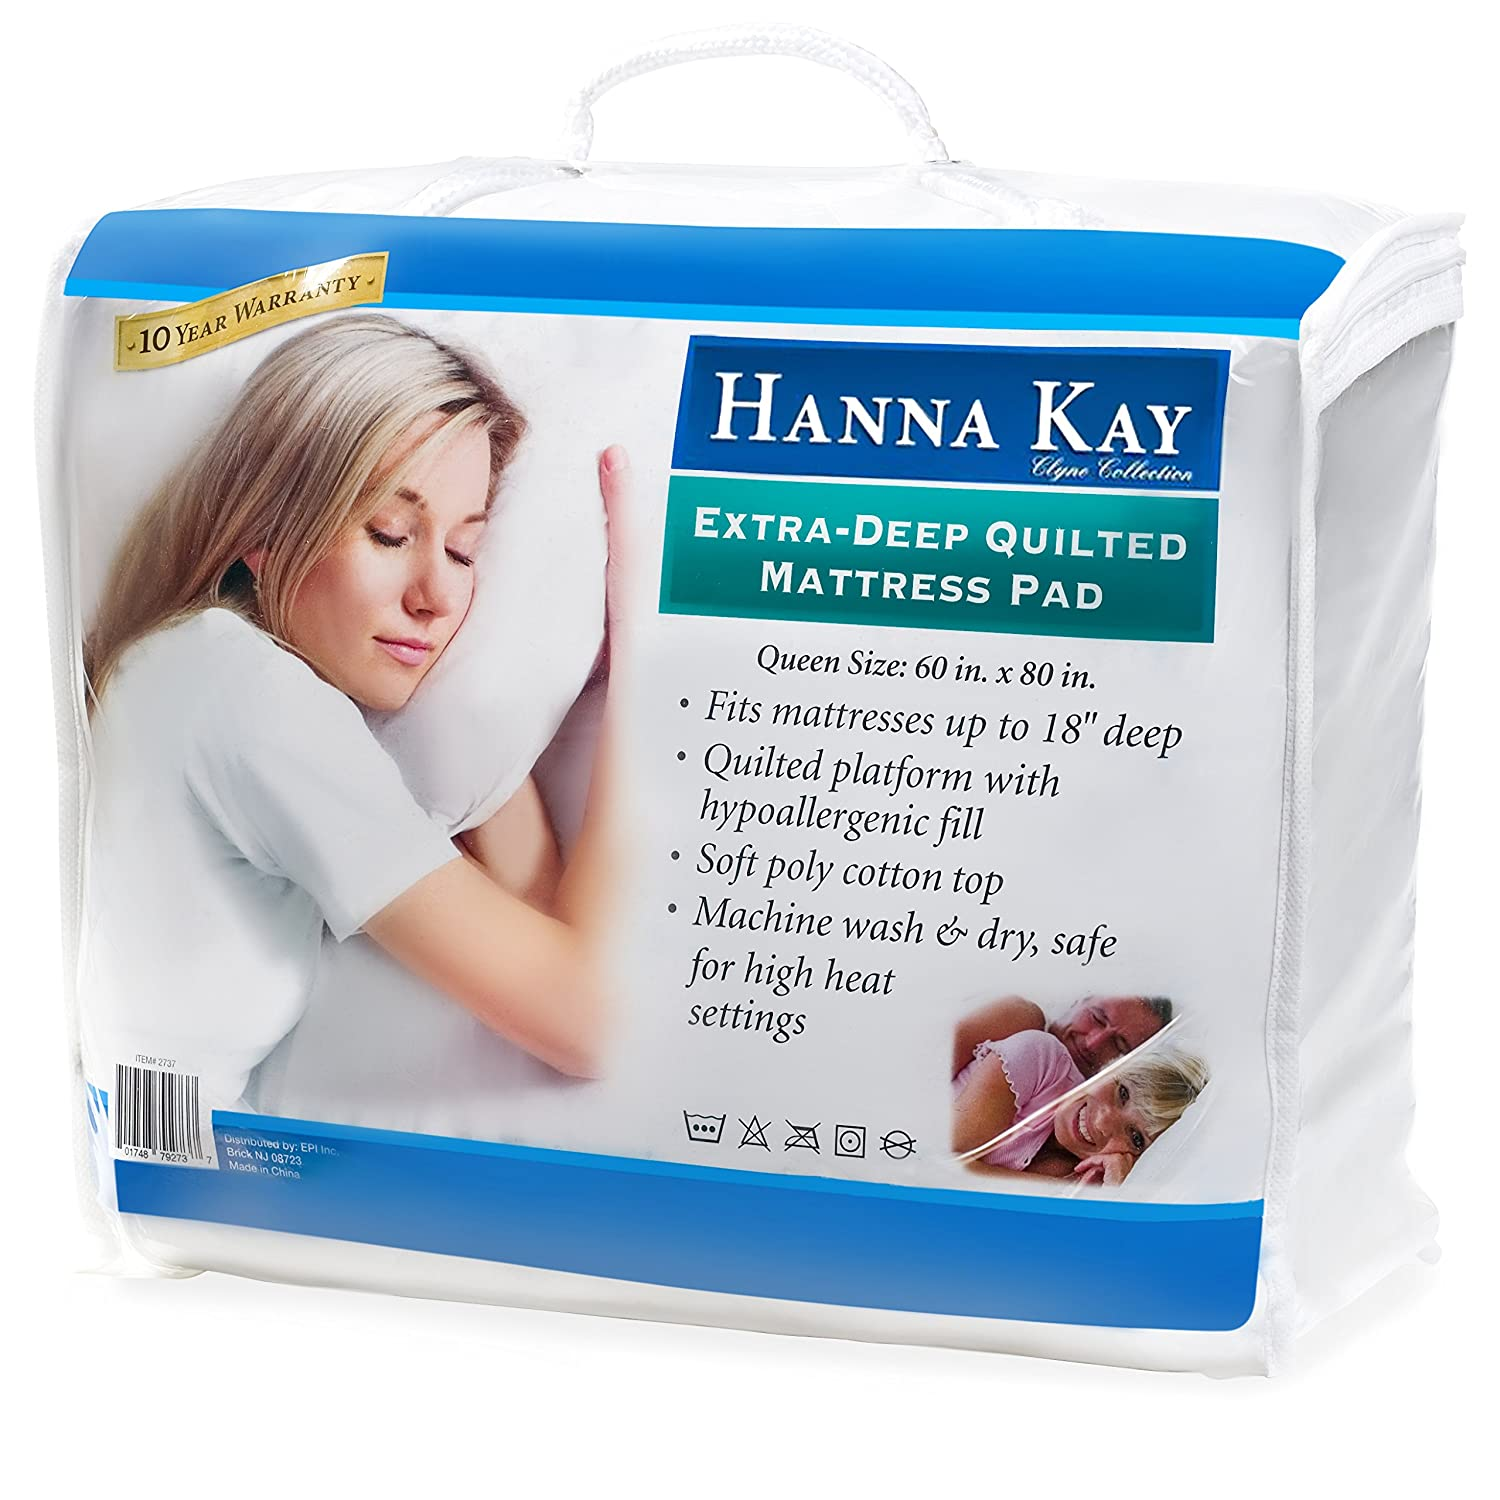 Amazon.com: Hypoallergenic Quilted Stretch-to-Fit Mattress Pad By Hanna  Kay, 10 Year Warranty-Clyne Collection (Queen): Home & Kitchen